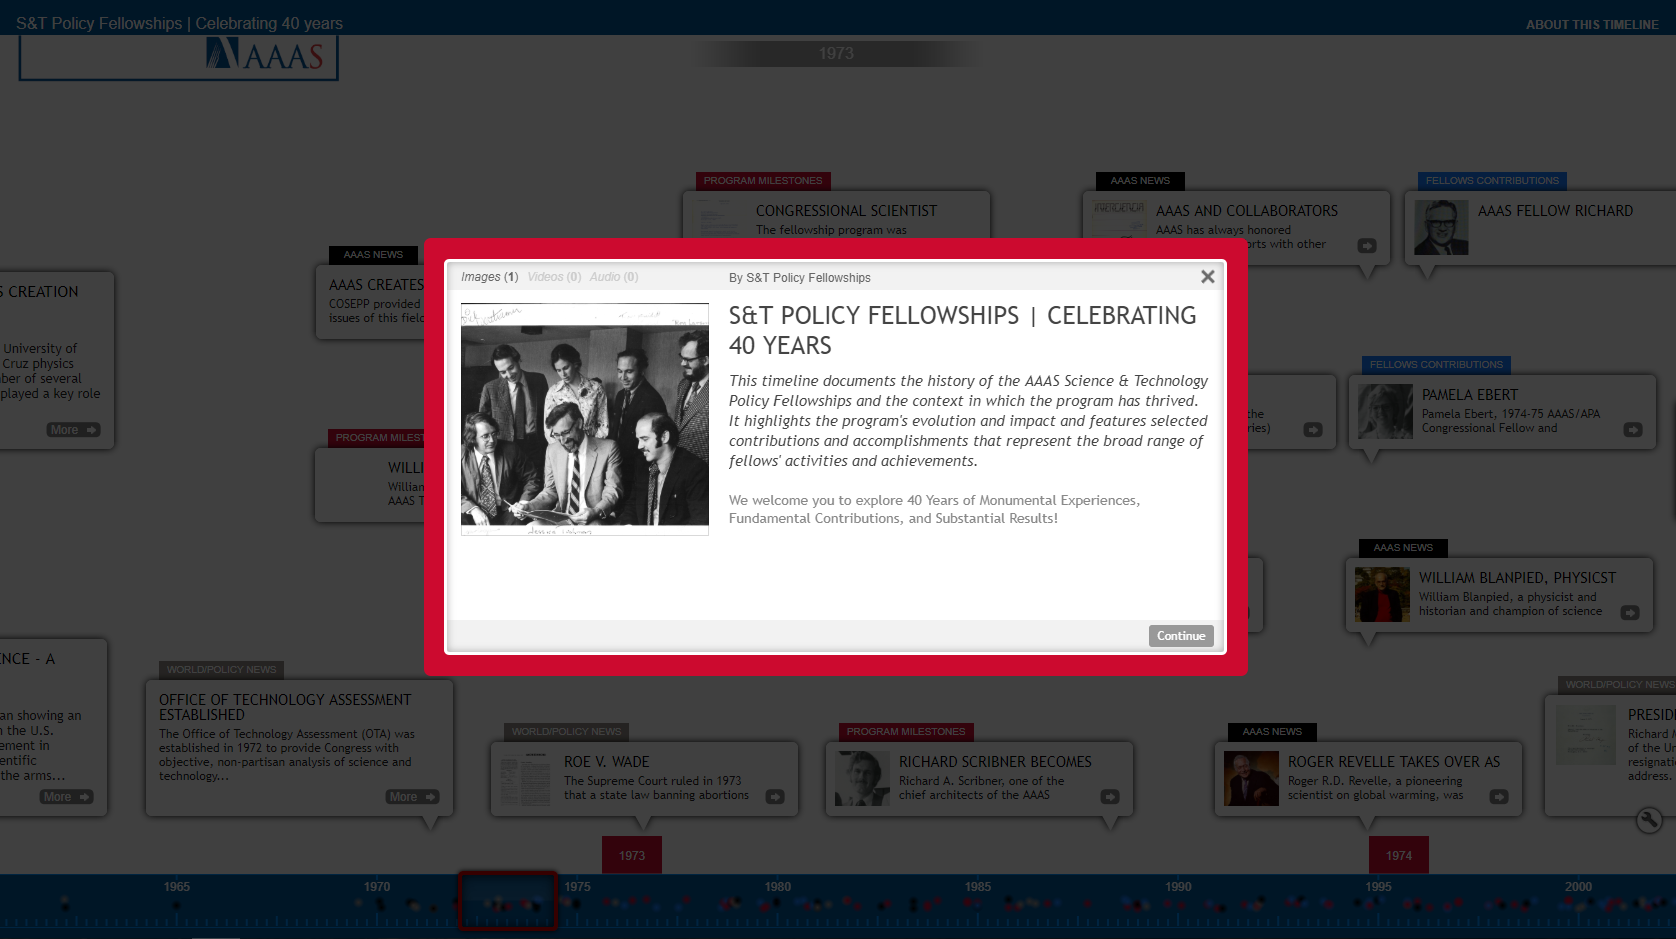 Interactive Timeline: 40 Years of STPF